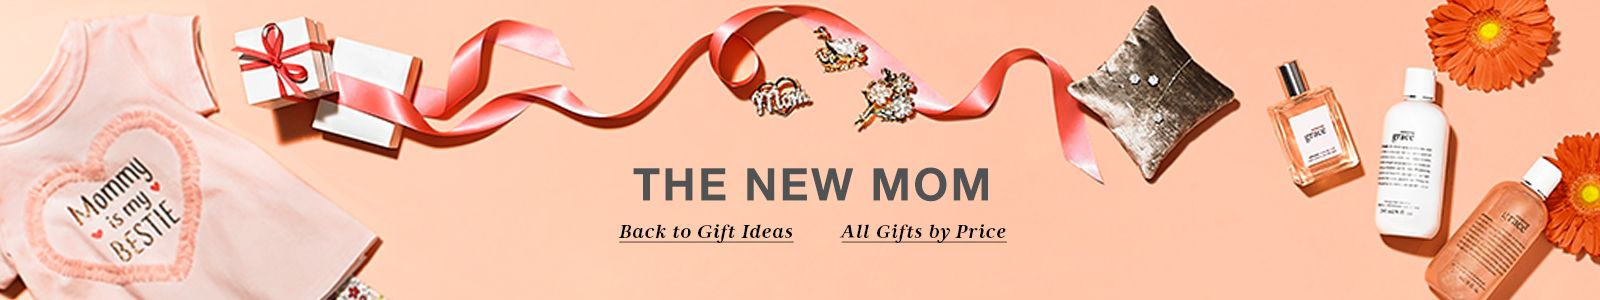 The New Mom, Back to Gift Ideas, All Gifts by Price